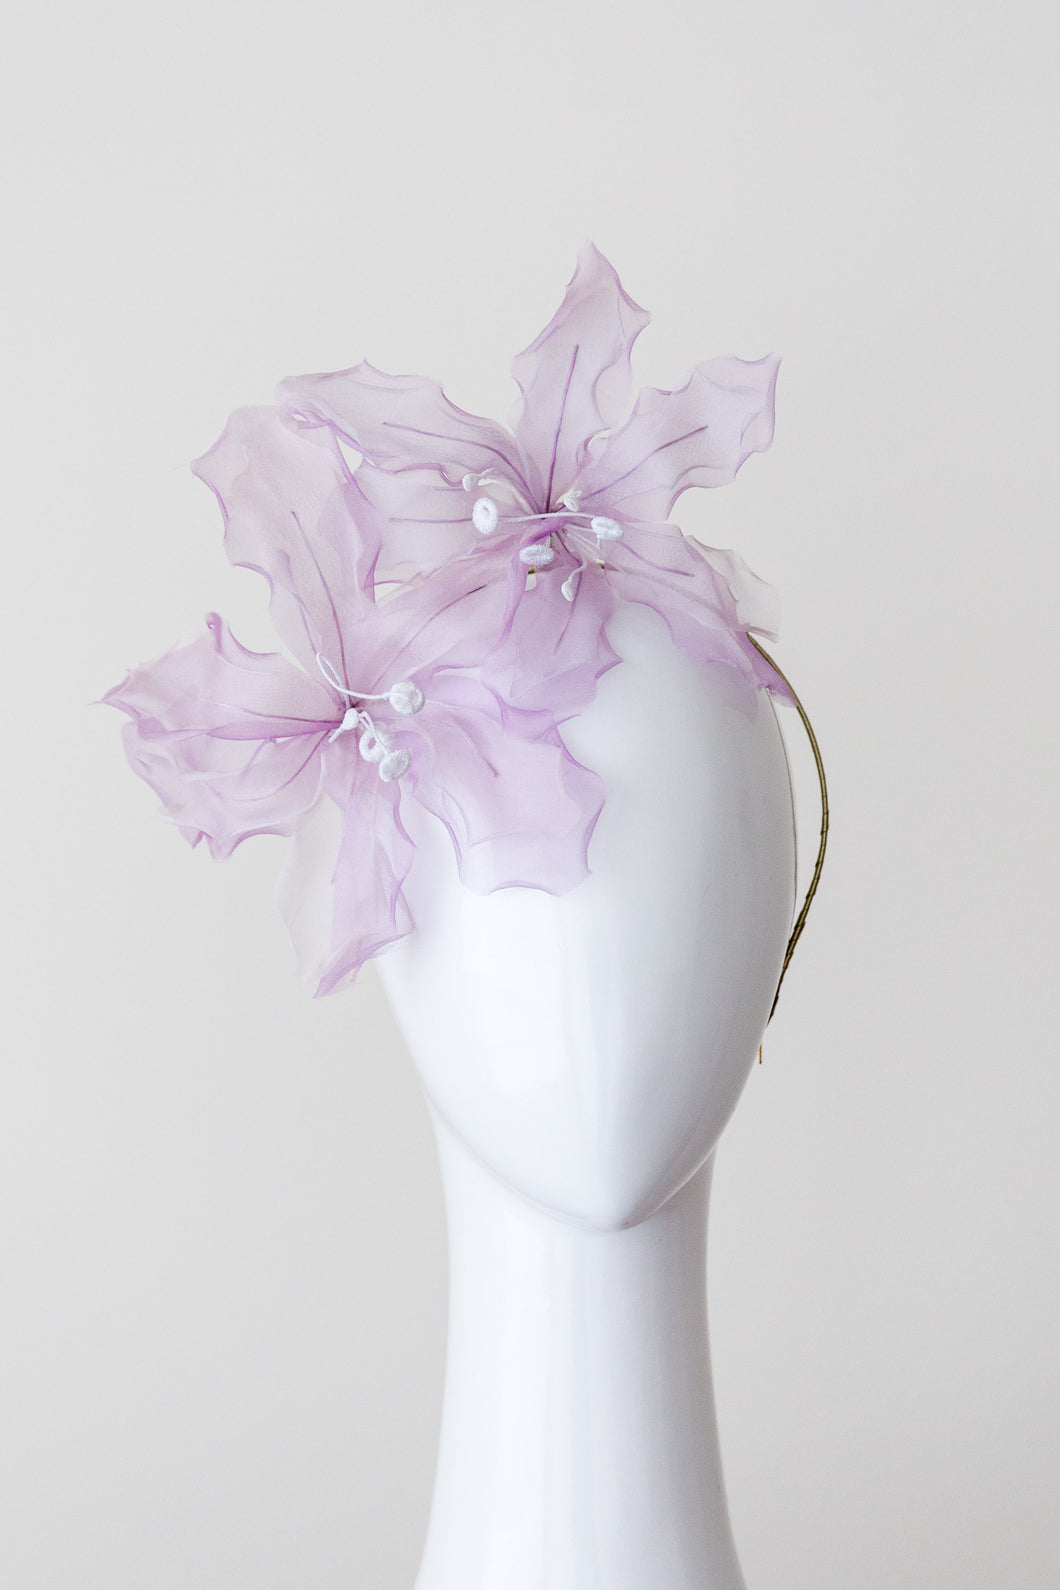 LATICIA HEADBAND- Soft mauve organza flowers in a metal headband